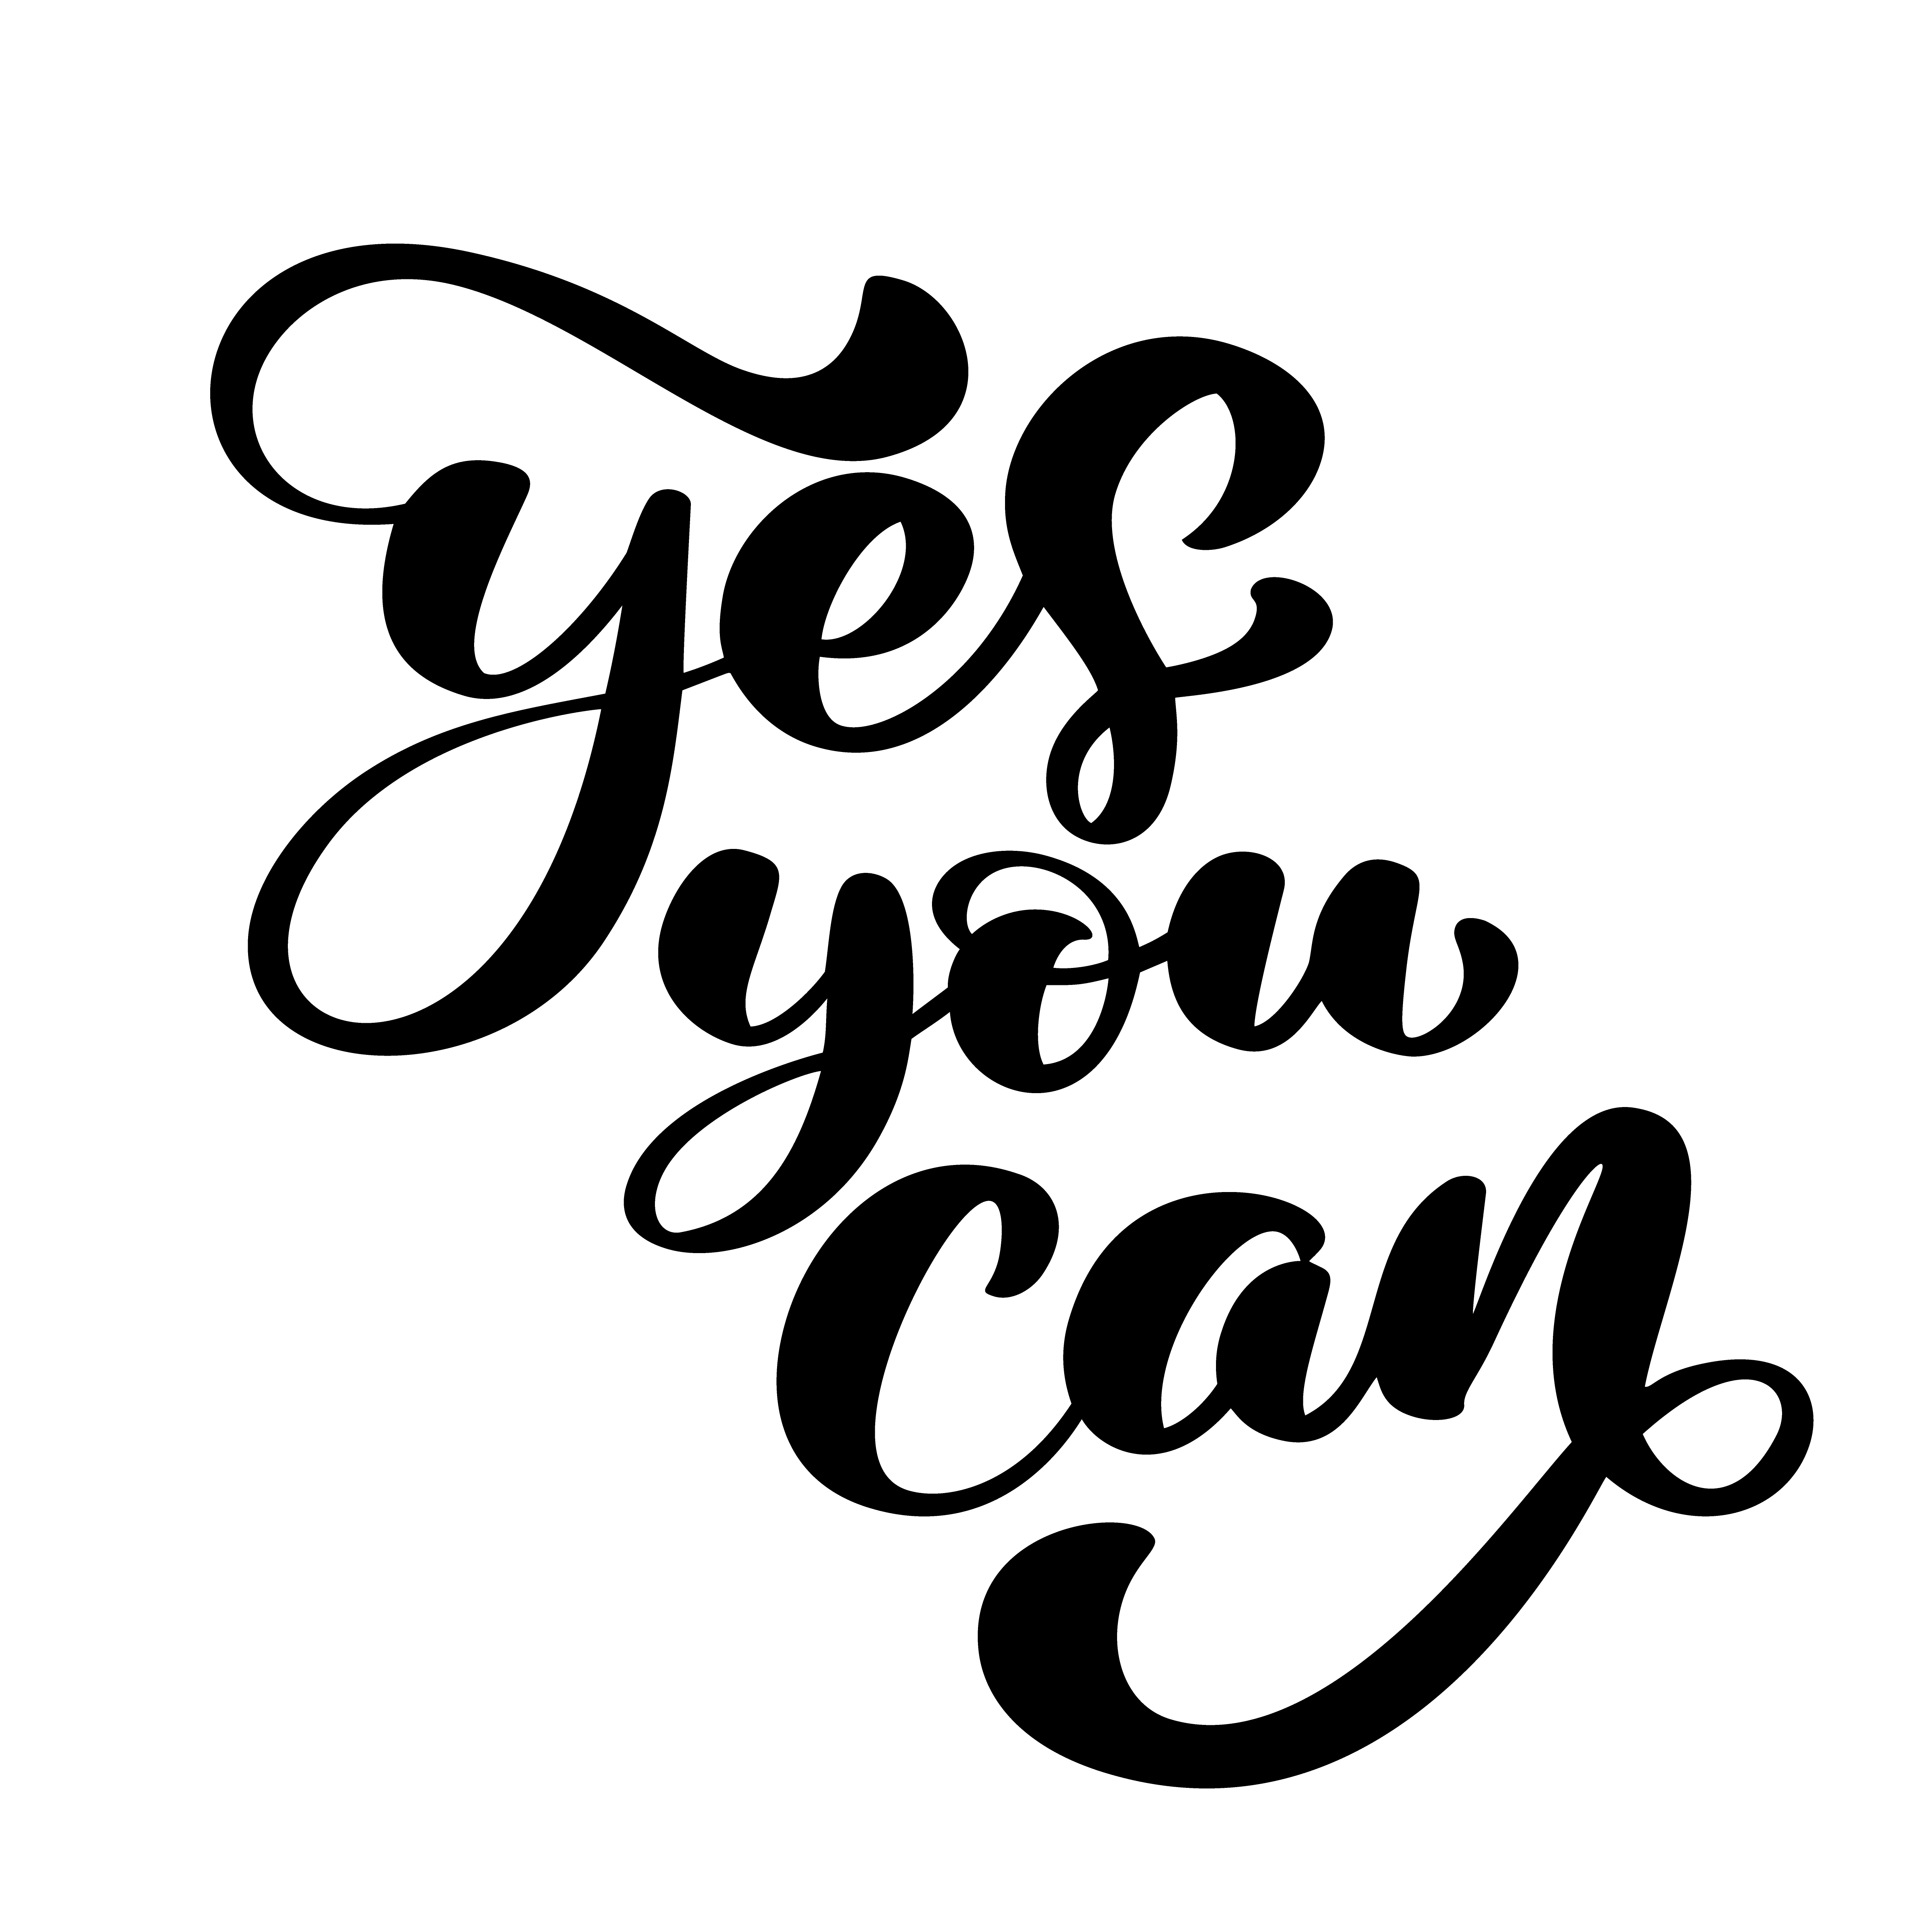 Inspirational Quote Yes You Can Hand Written Calligraphy